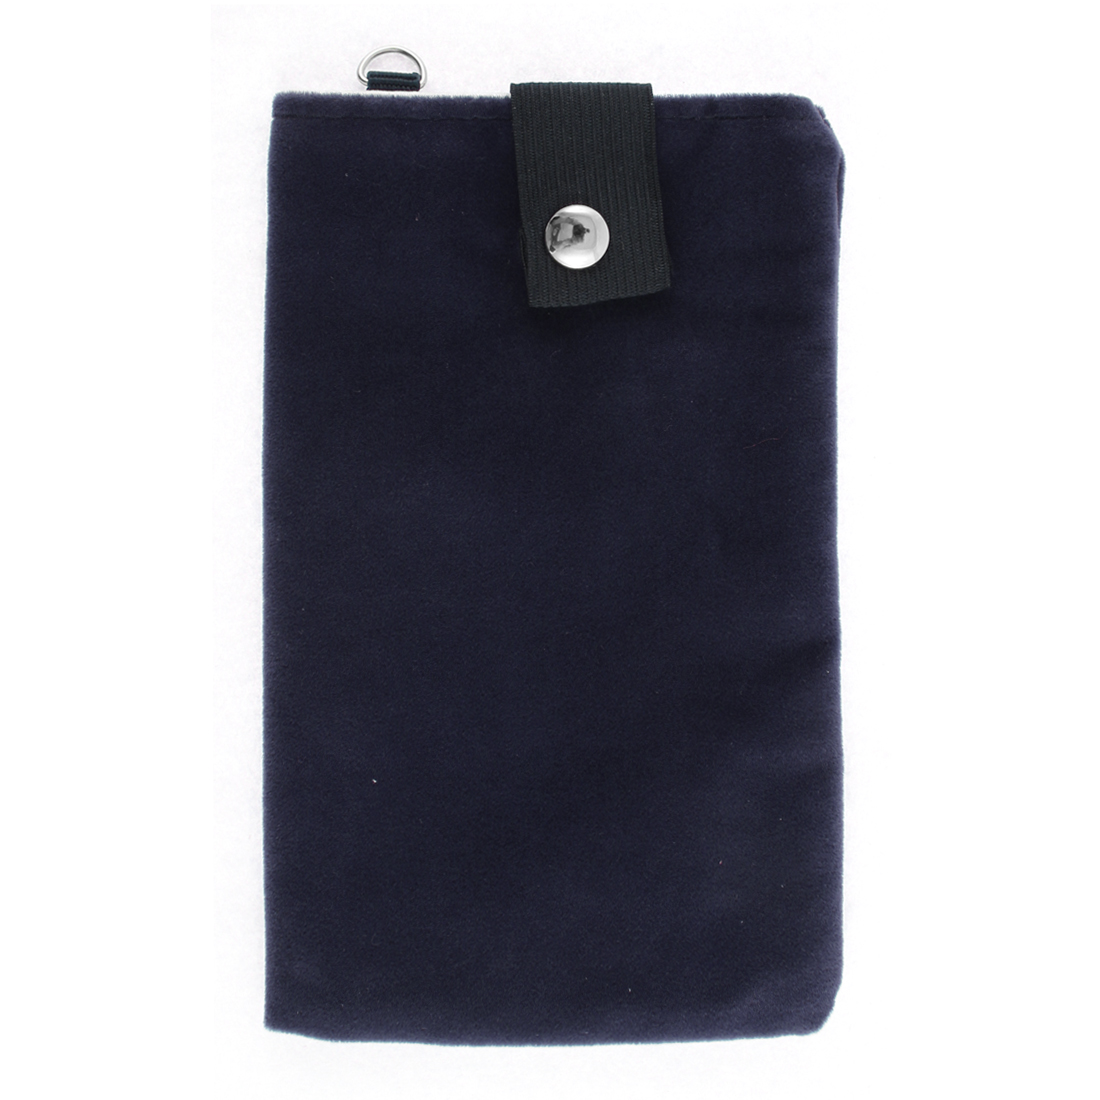 Rectangle Shaped Dual Layer Cell Phone Pouch Sleeve Bag Dark Blue 18x11cm